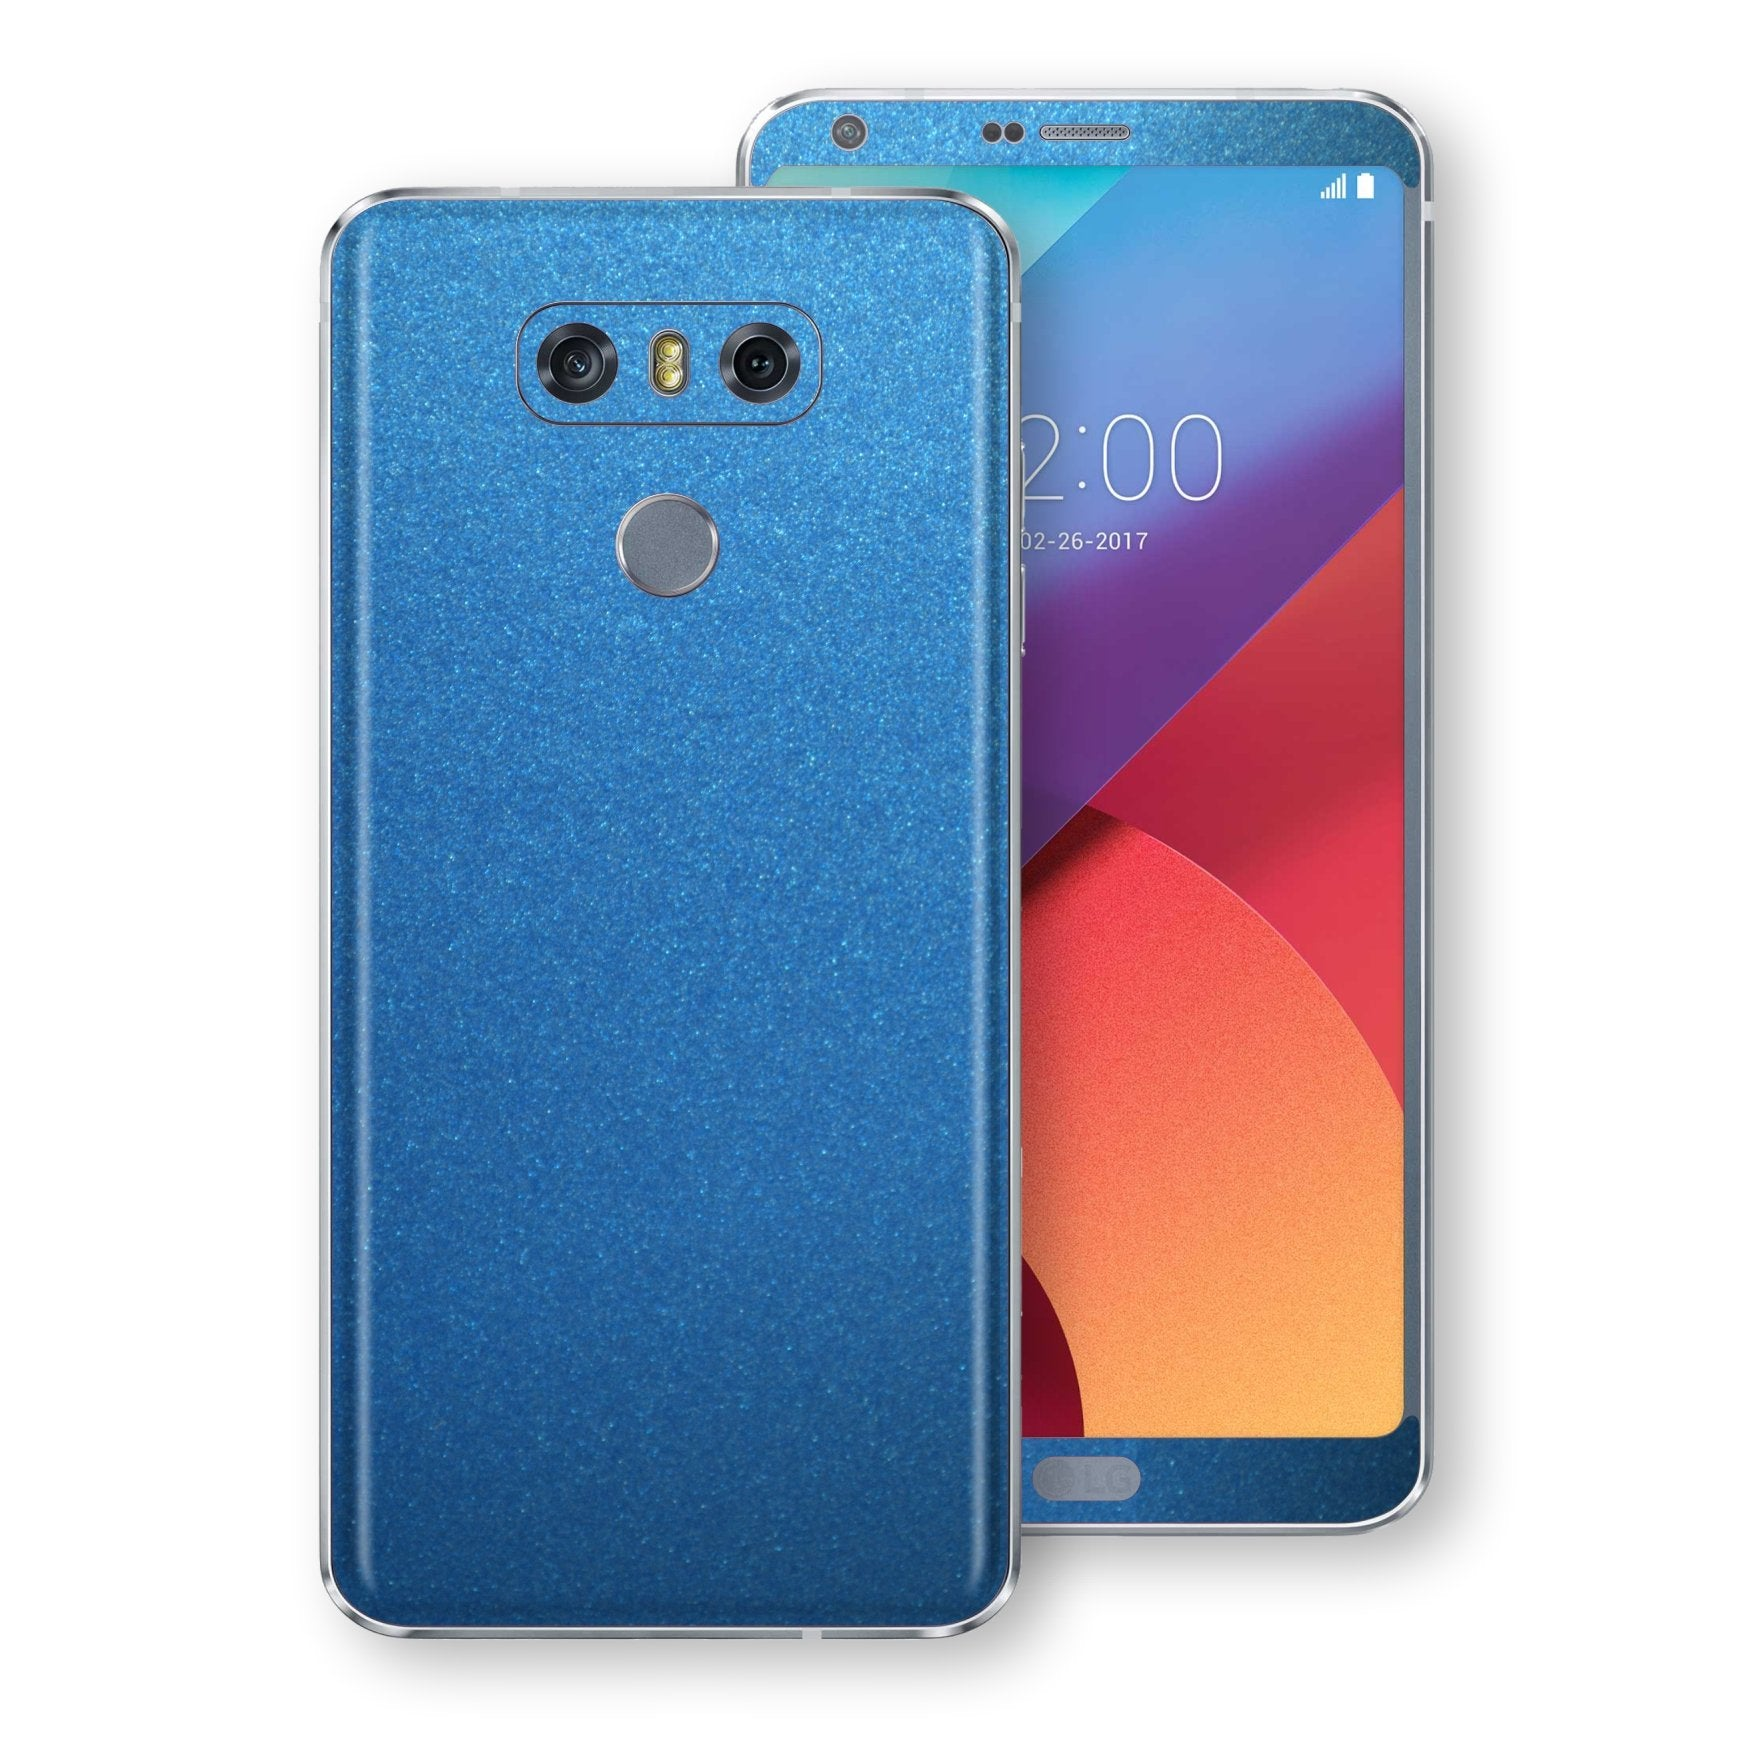 LG G6 Azure Blue Glossy Metallic Skin, Decal, Wrap, Protector, Cover by EasySkinz | EasySkinz.com